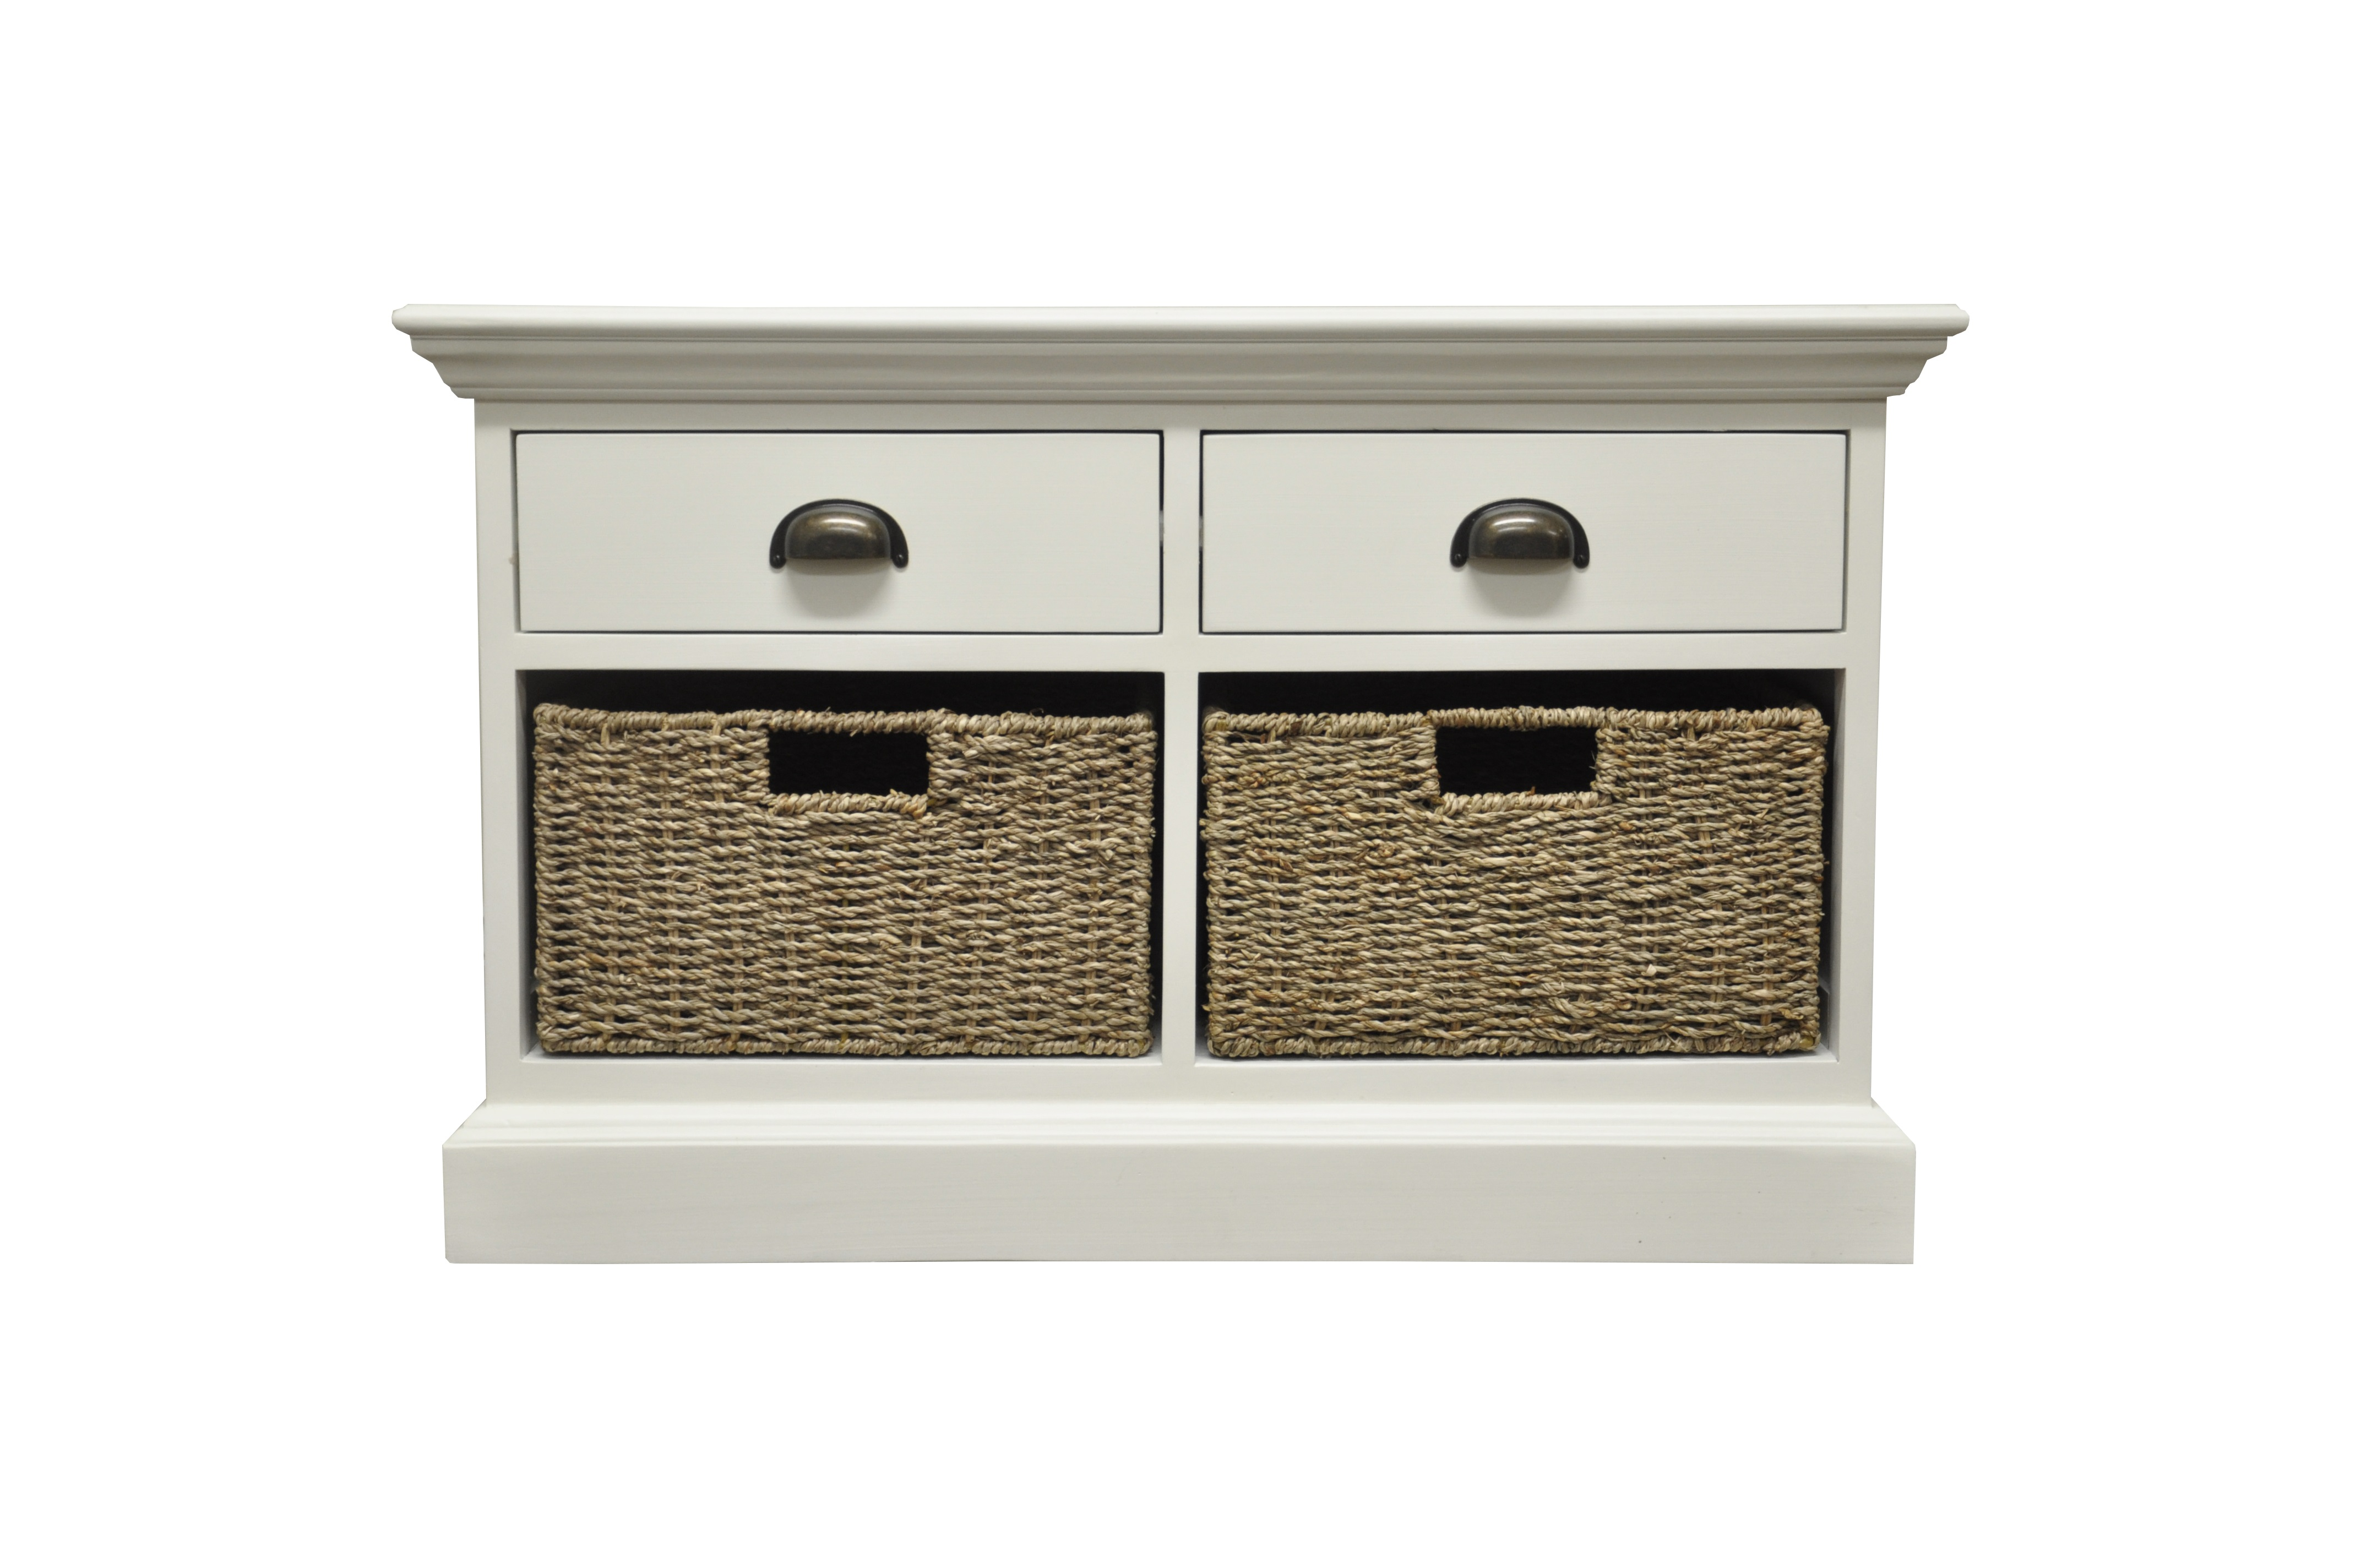 Furniture Express Rhodes 2 Drawer 2 Basket Unit White Storage Unit Image0 Image